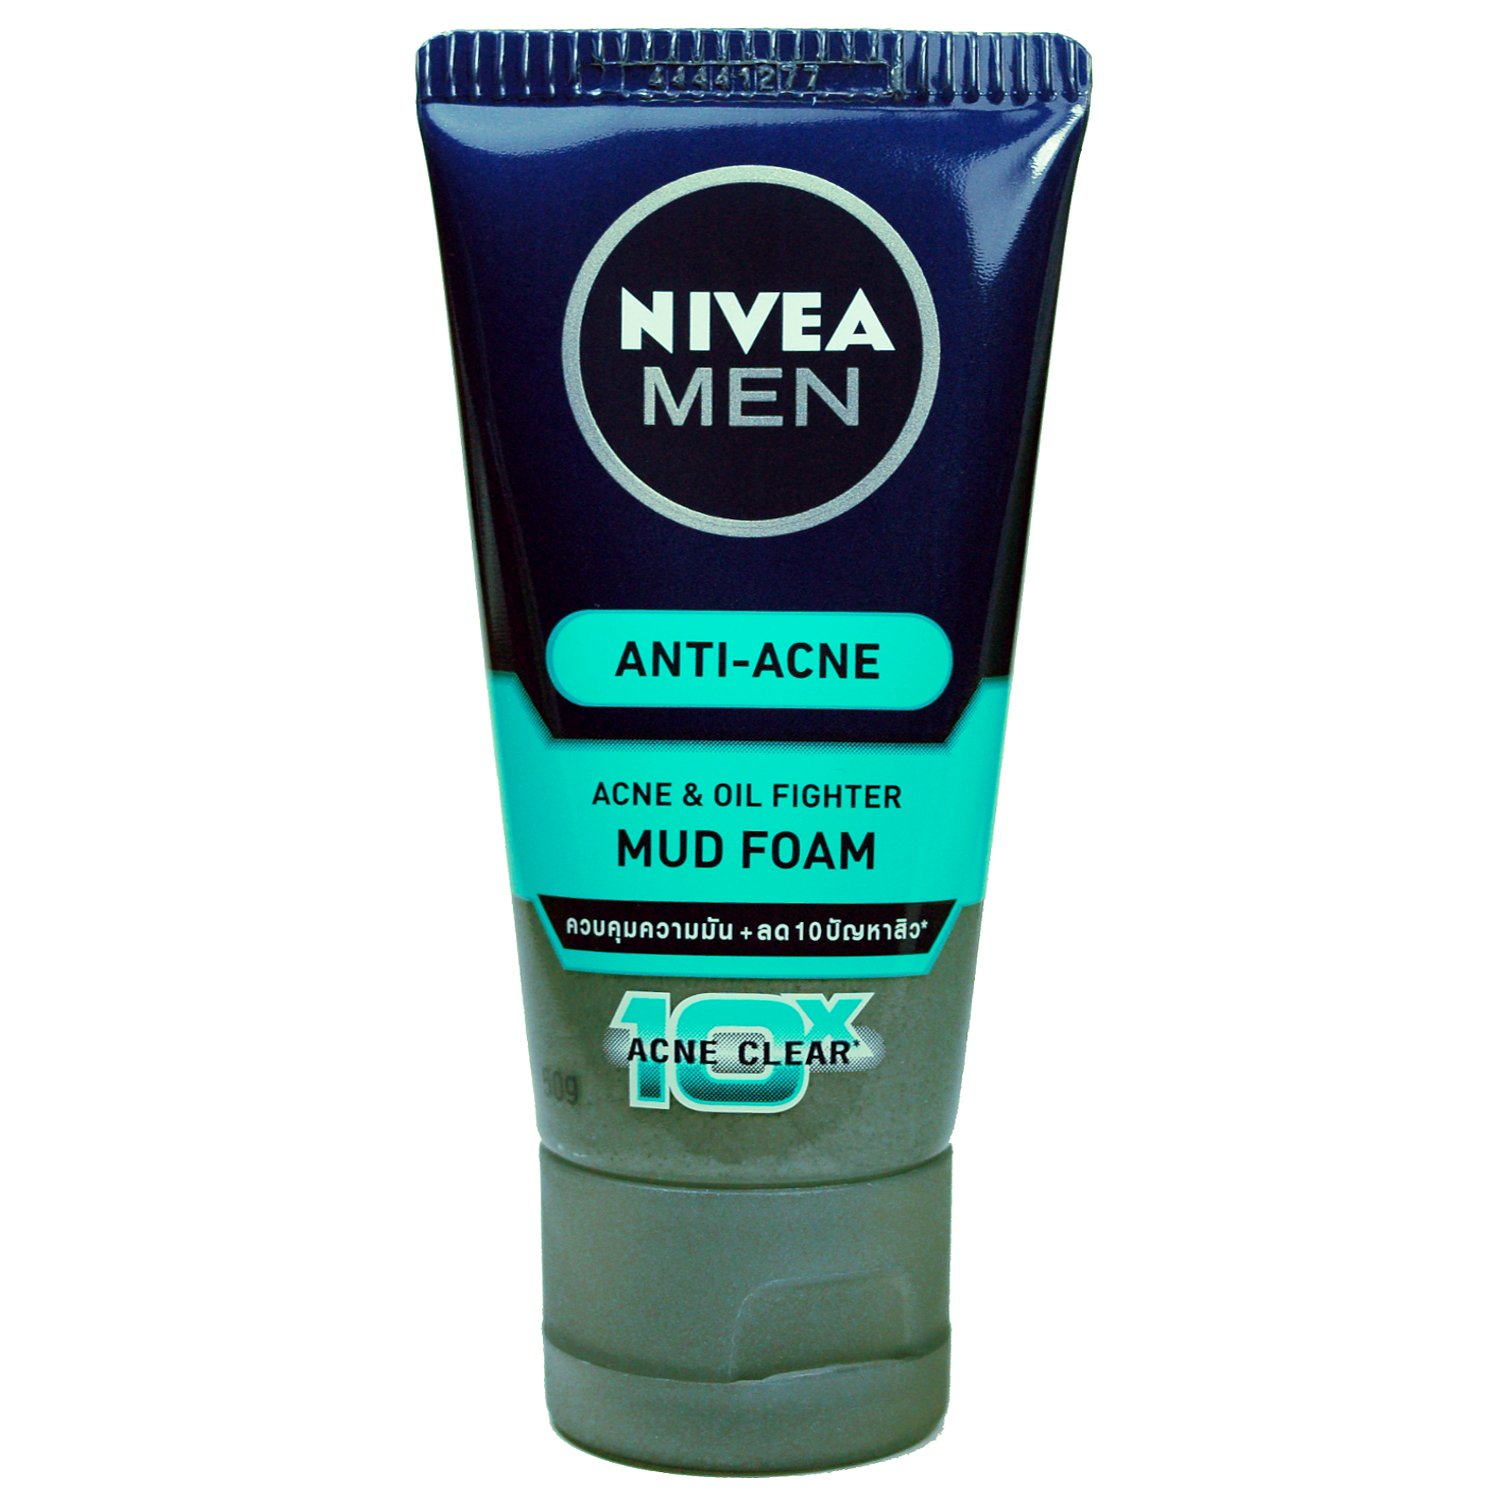 Nivea Extra White Pore Minimizer Mud Foam Men Whitening Brightening Make Up Clear 2 In 1 100ml Acne Oil Control Face Wash Cleanser 50g